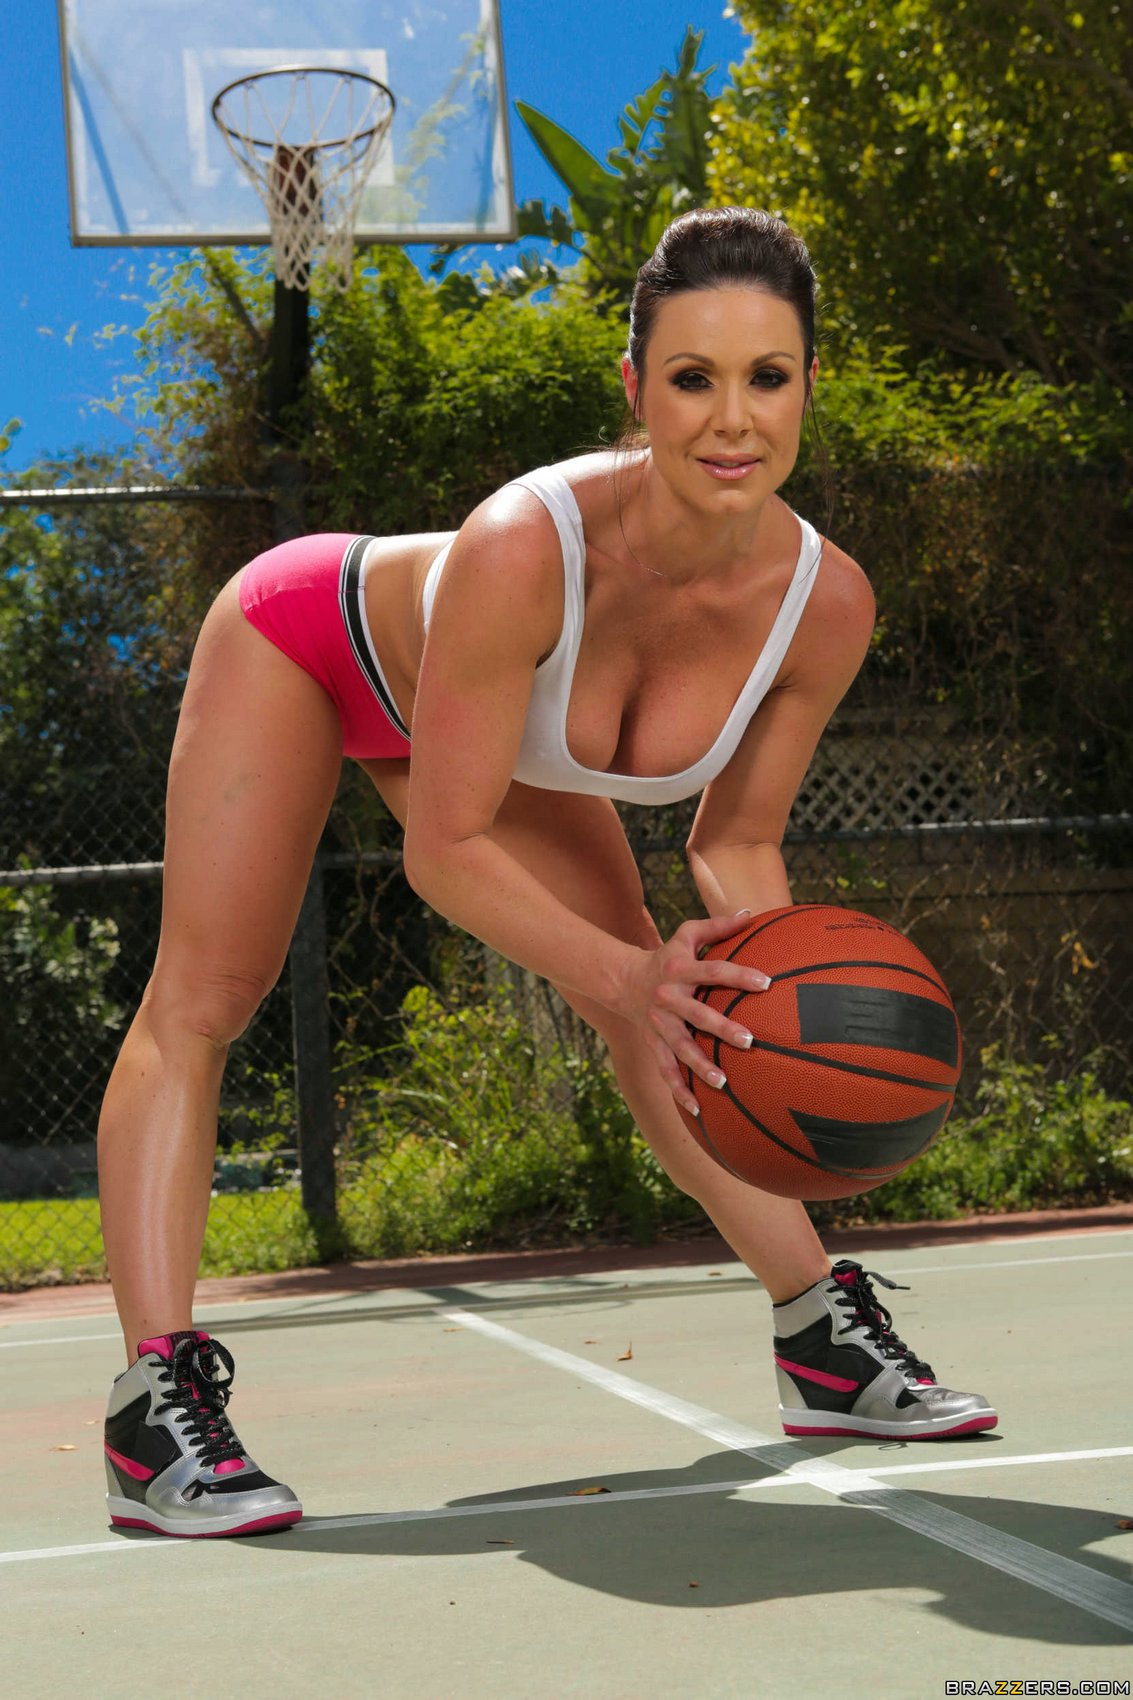 Lesbian lust and basketball scene 3